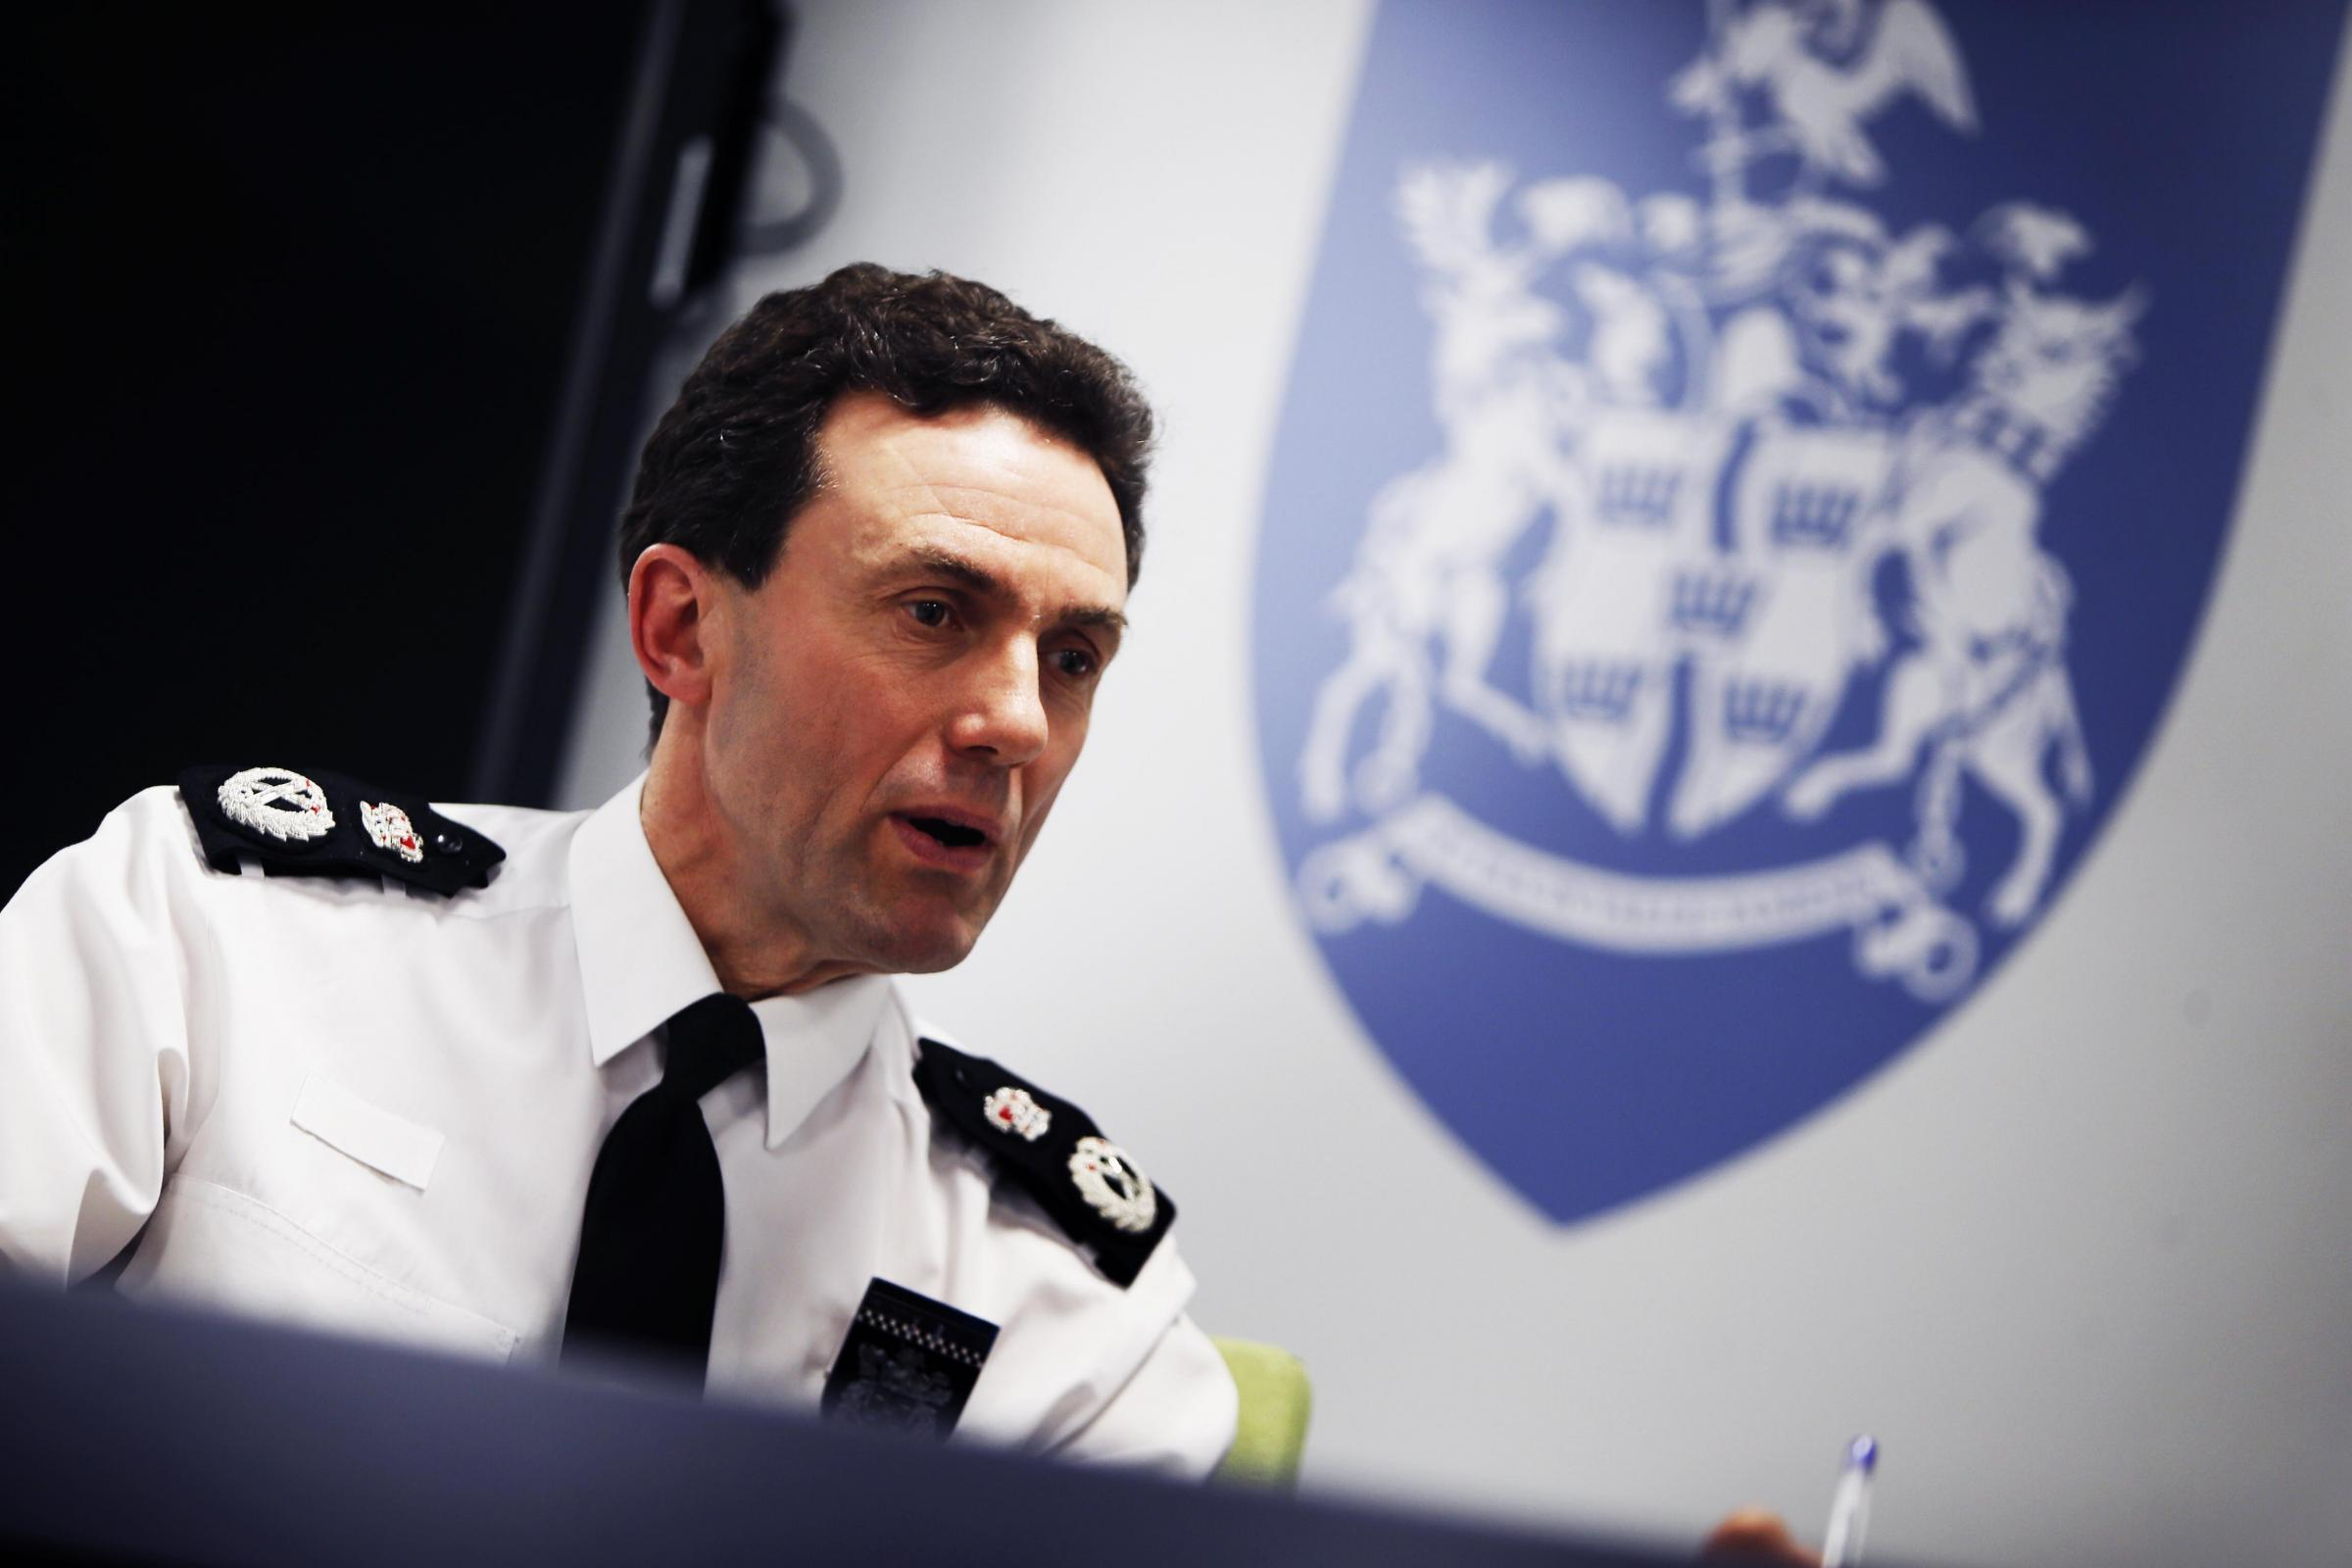 Francis Habgood takes over from Sara Thornton as Chief Constable of Thames Valley Police